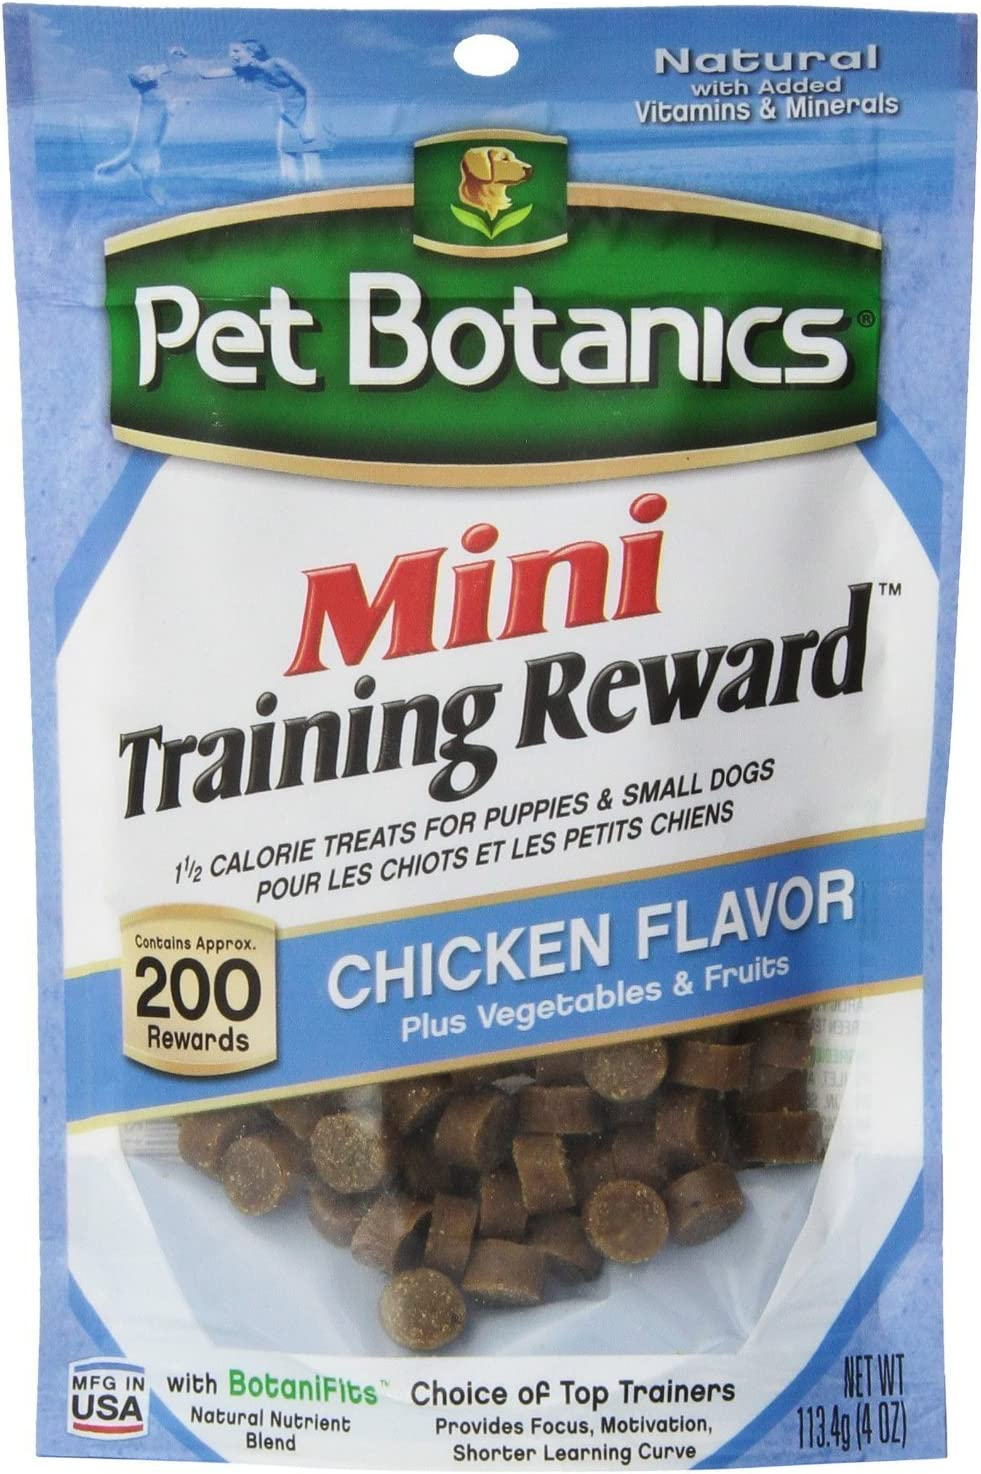 Pet Botanics Mini Training Rewards for Dogs 3 Flavor Variety Bundle: (1) Bacon, (1) Chicken and (1) Beef, 4 Oz Ea (200 Count per Bag, 3 Bags Total)